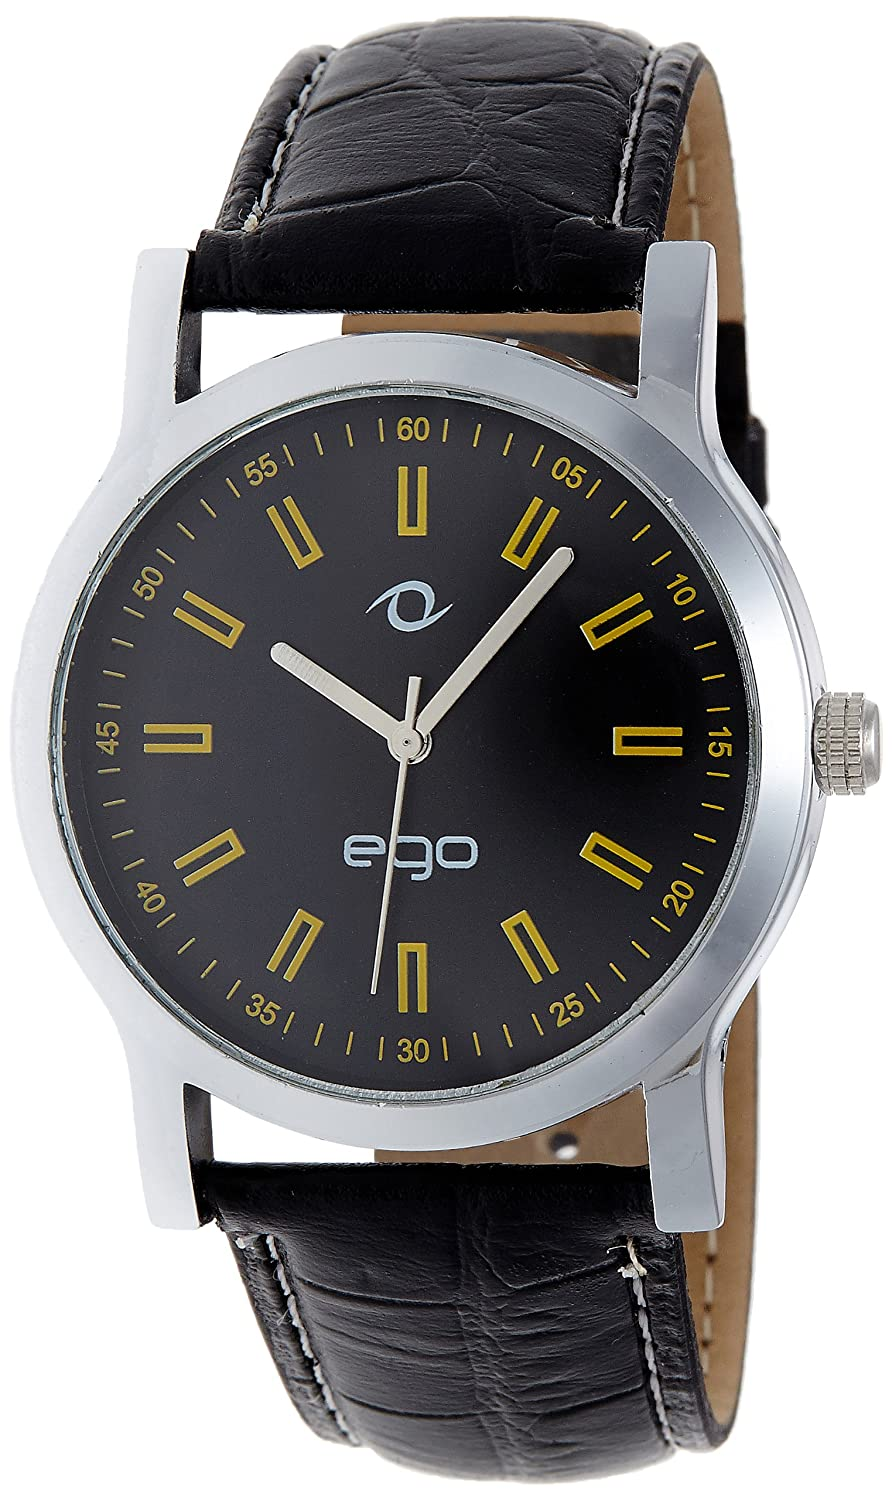 Just For Rs 399 - Maxima Ego Analog Black Dial Men's Watch - E-01072LAGC